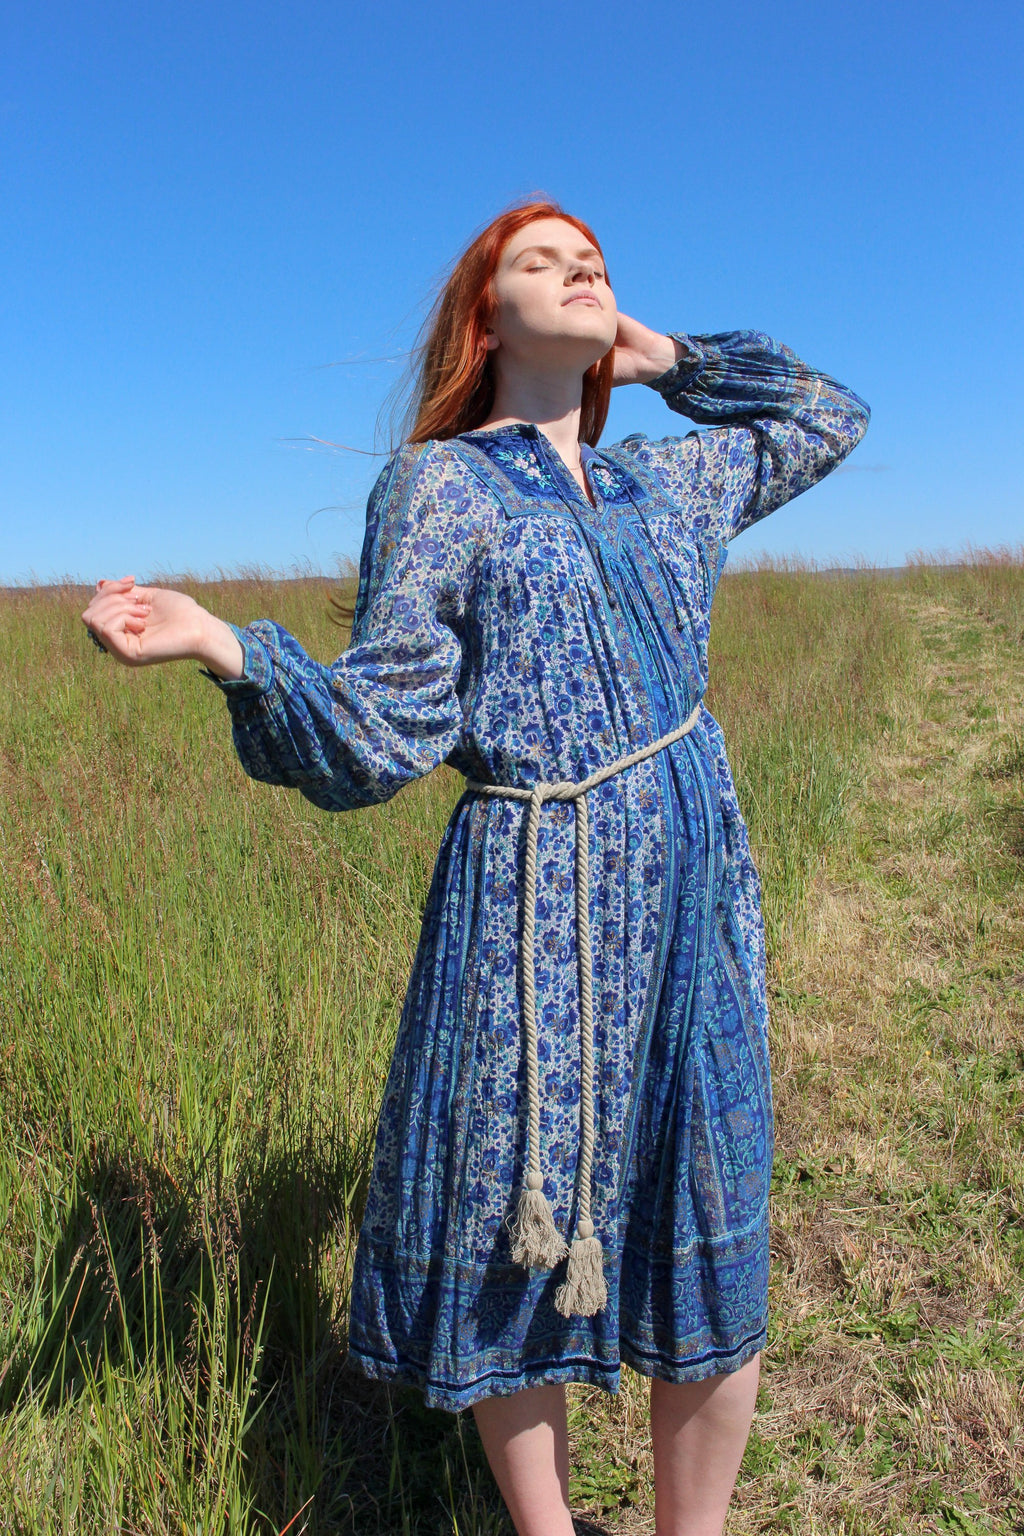 Long Sleeve Bohemian Dress - Bohemian Gypsy Dress - Indian Gauze Dress - Hippie Embroidered Dress - Cotton Gauze Dress - Long Sundress